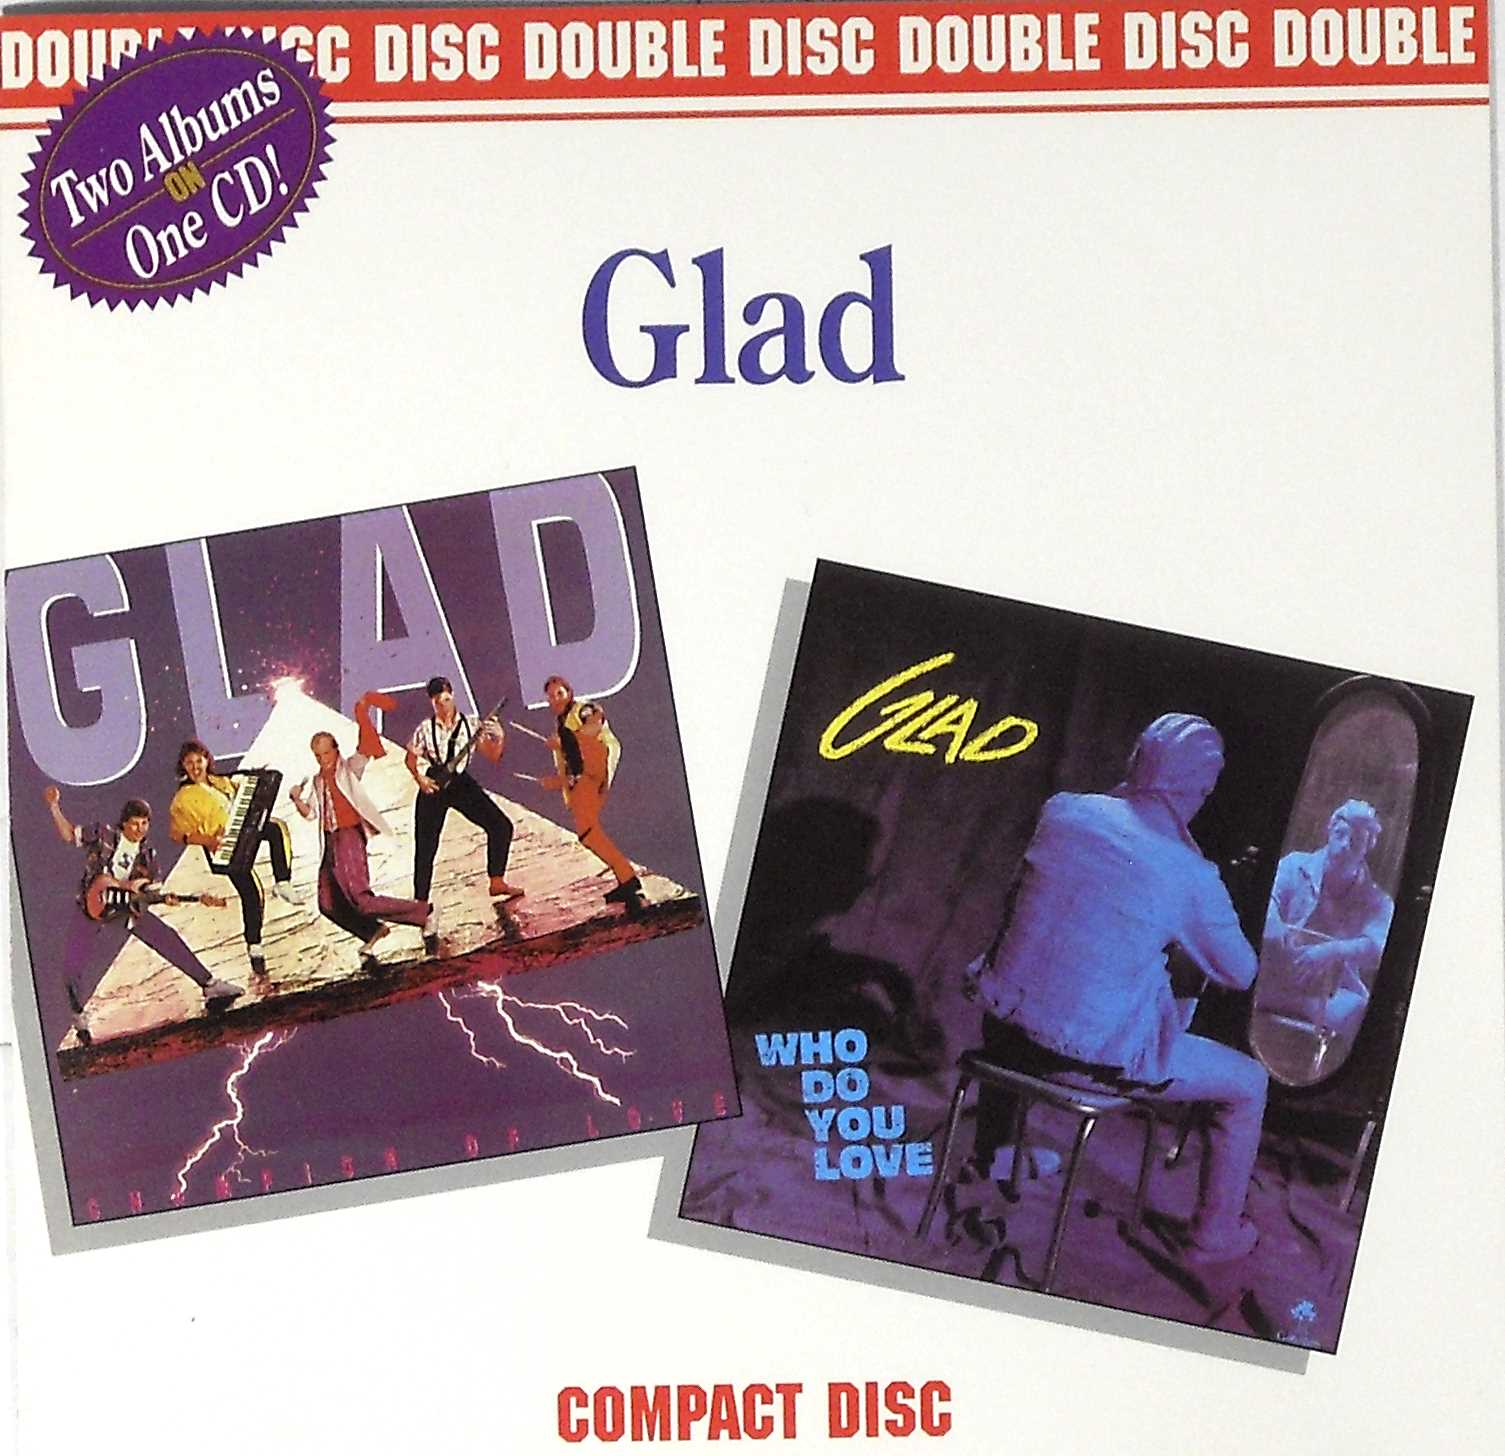 Glad - Champion Of Love/who Do You Love